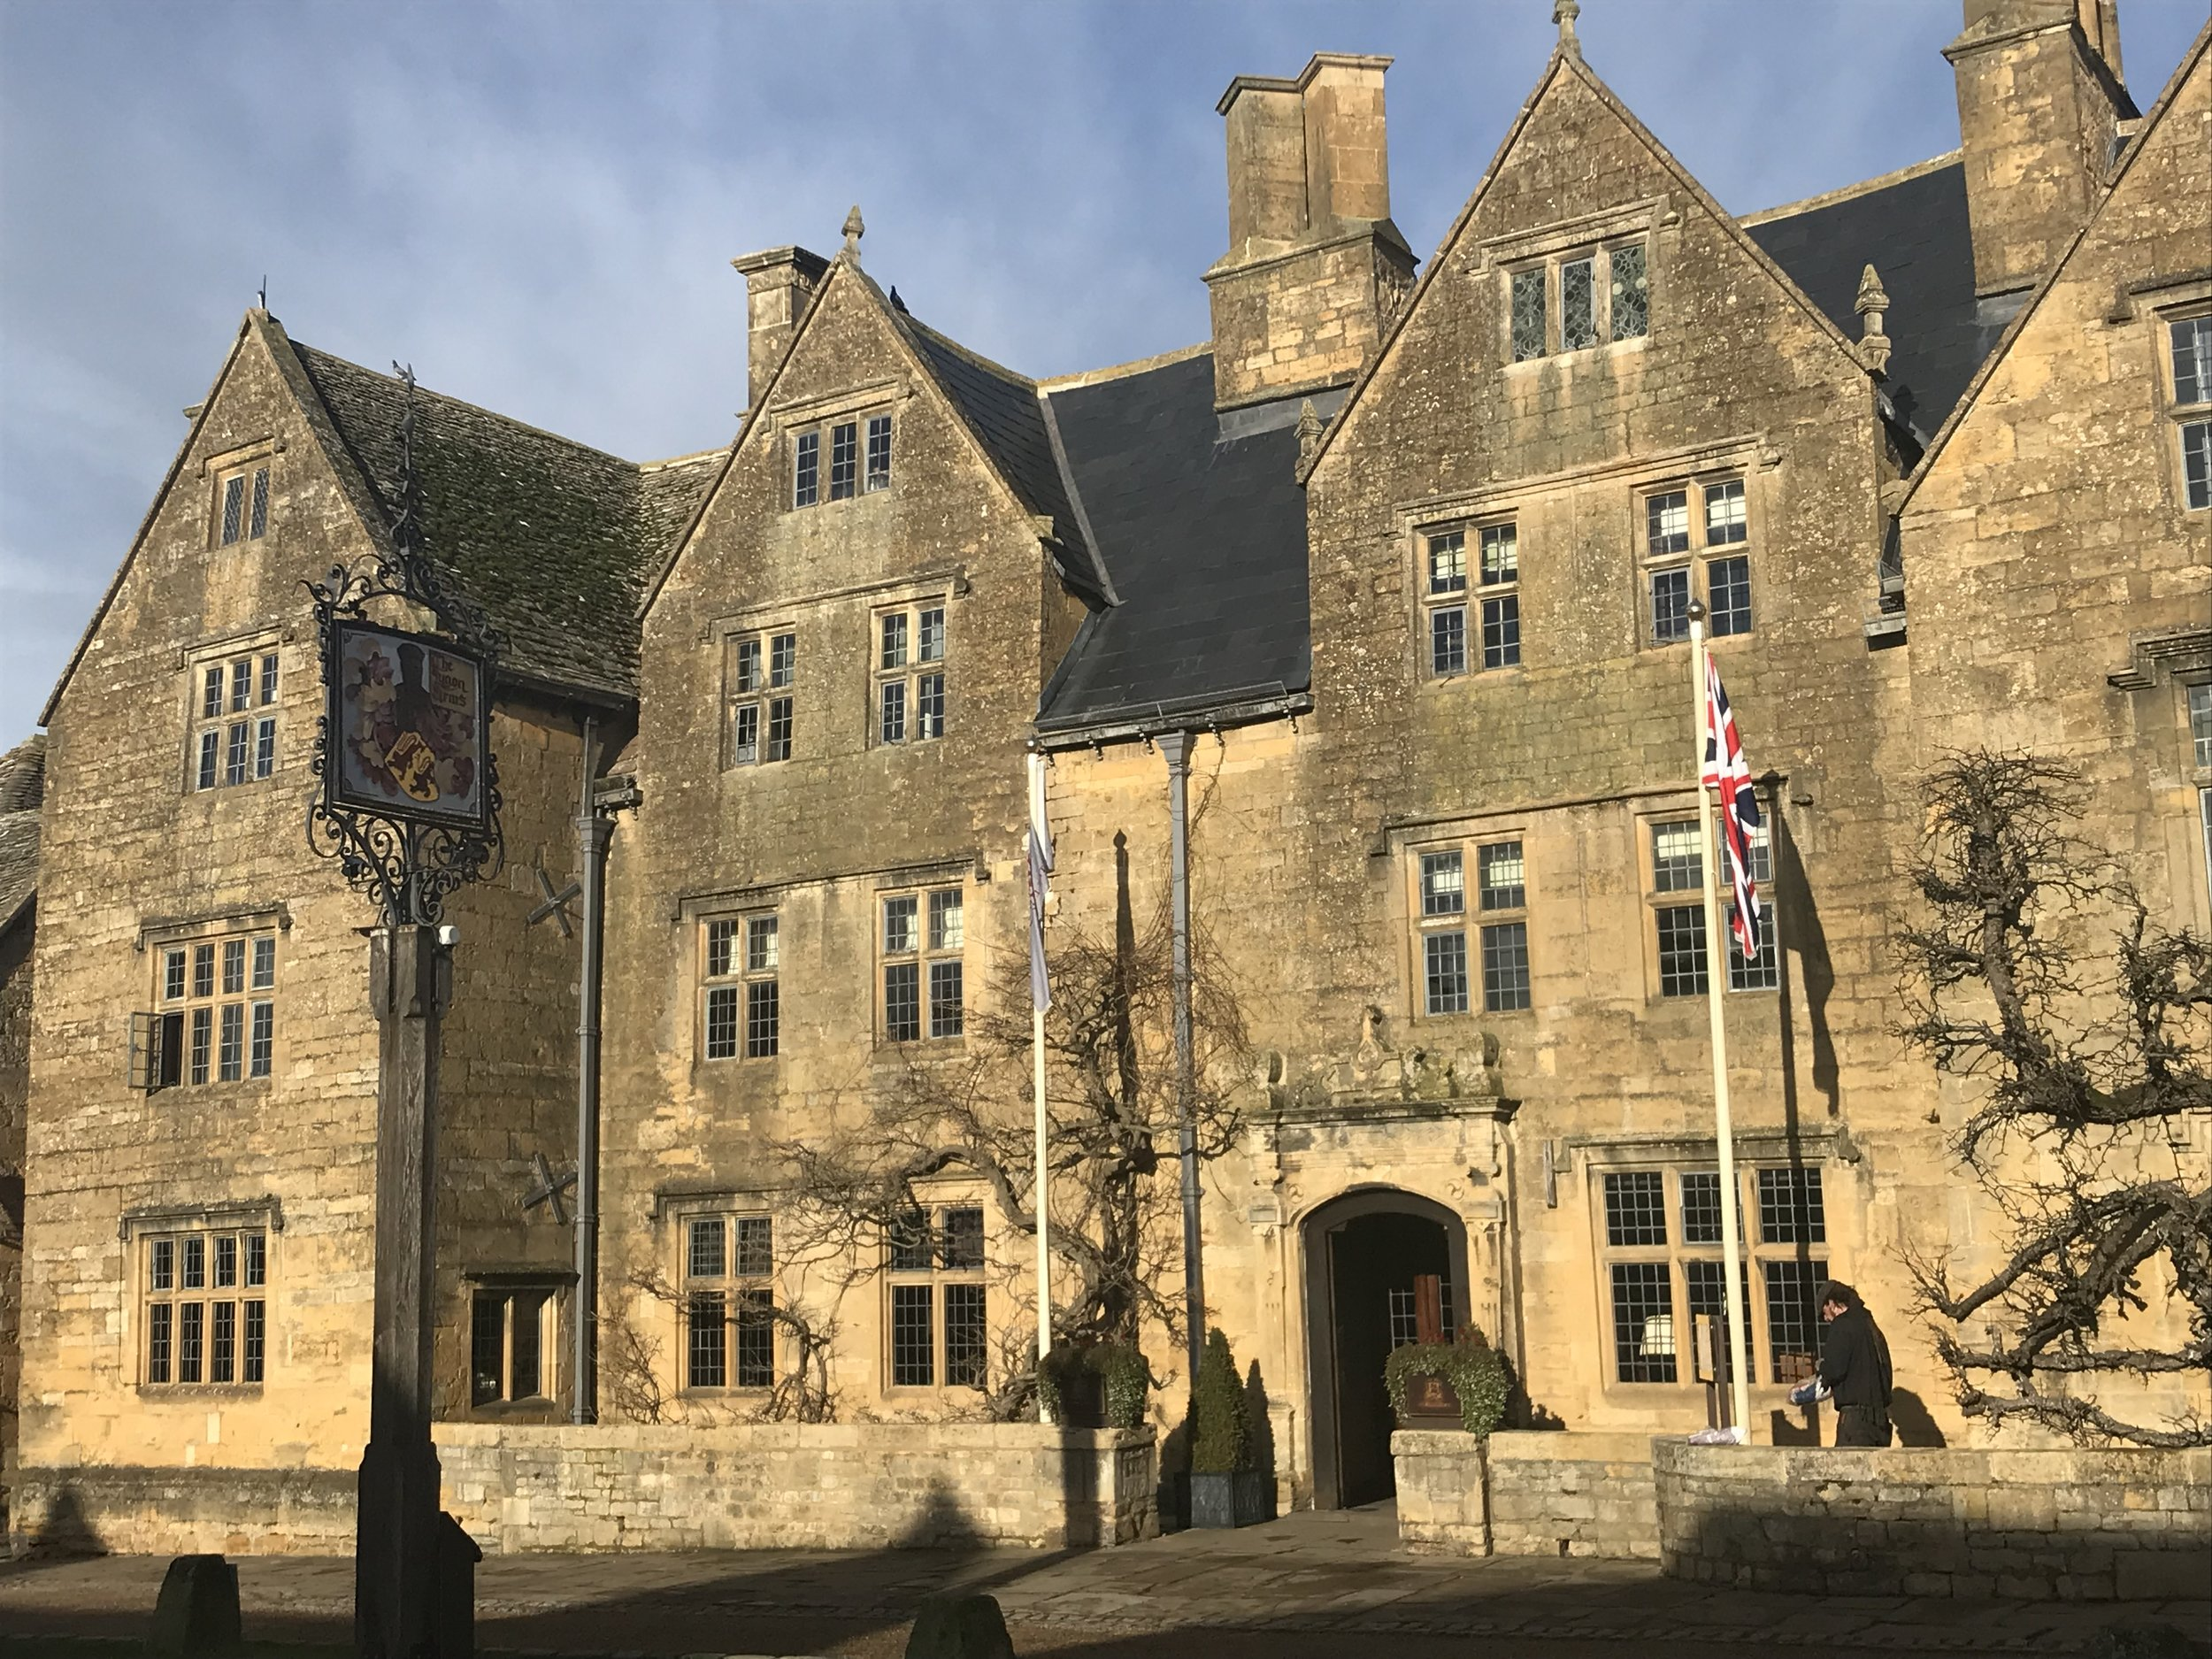 The Lygon Arms has seen some very famous, and infamous, guests over the centuries.